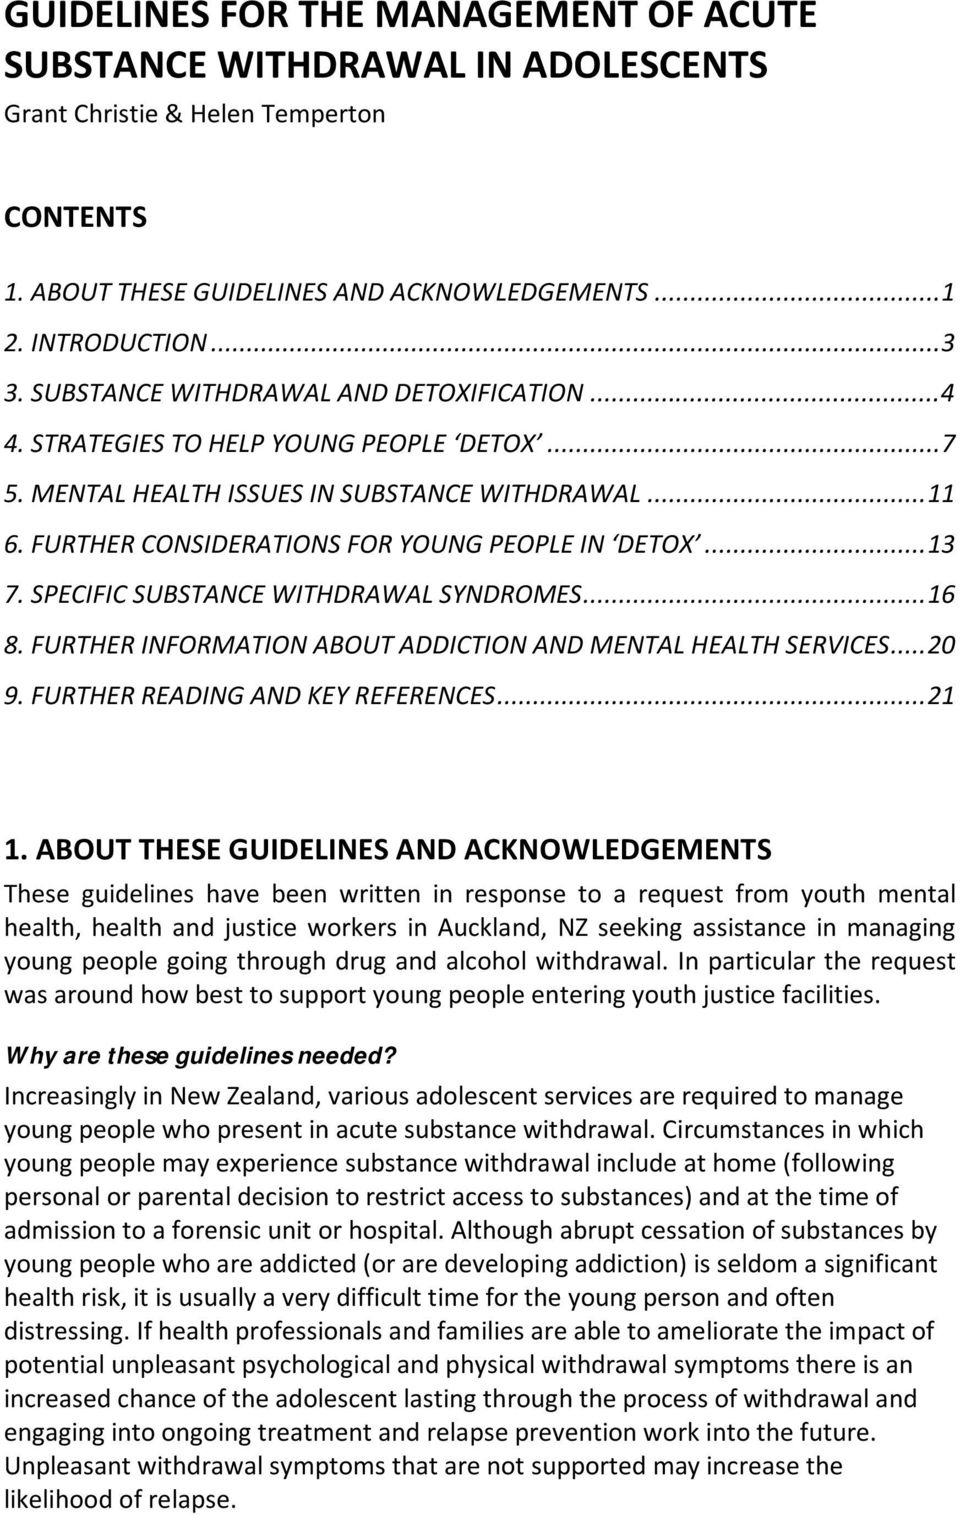 WITHDRAWAL SYNDROMES16 8 FURTHER INFORMATION ABOUT ADDICTION AND MENTAL HEALTH SERVICES20 9 FURTHER READING AND KEY REFERENCES21 1 ABOUT THESE GUIDELINES AND ACKNOWLEDGEMENTS These guidelines have